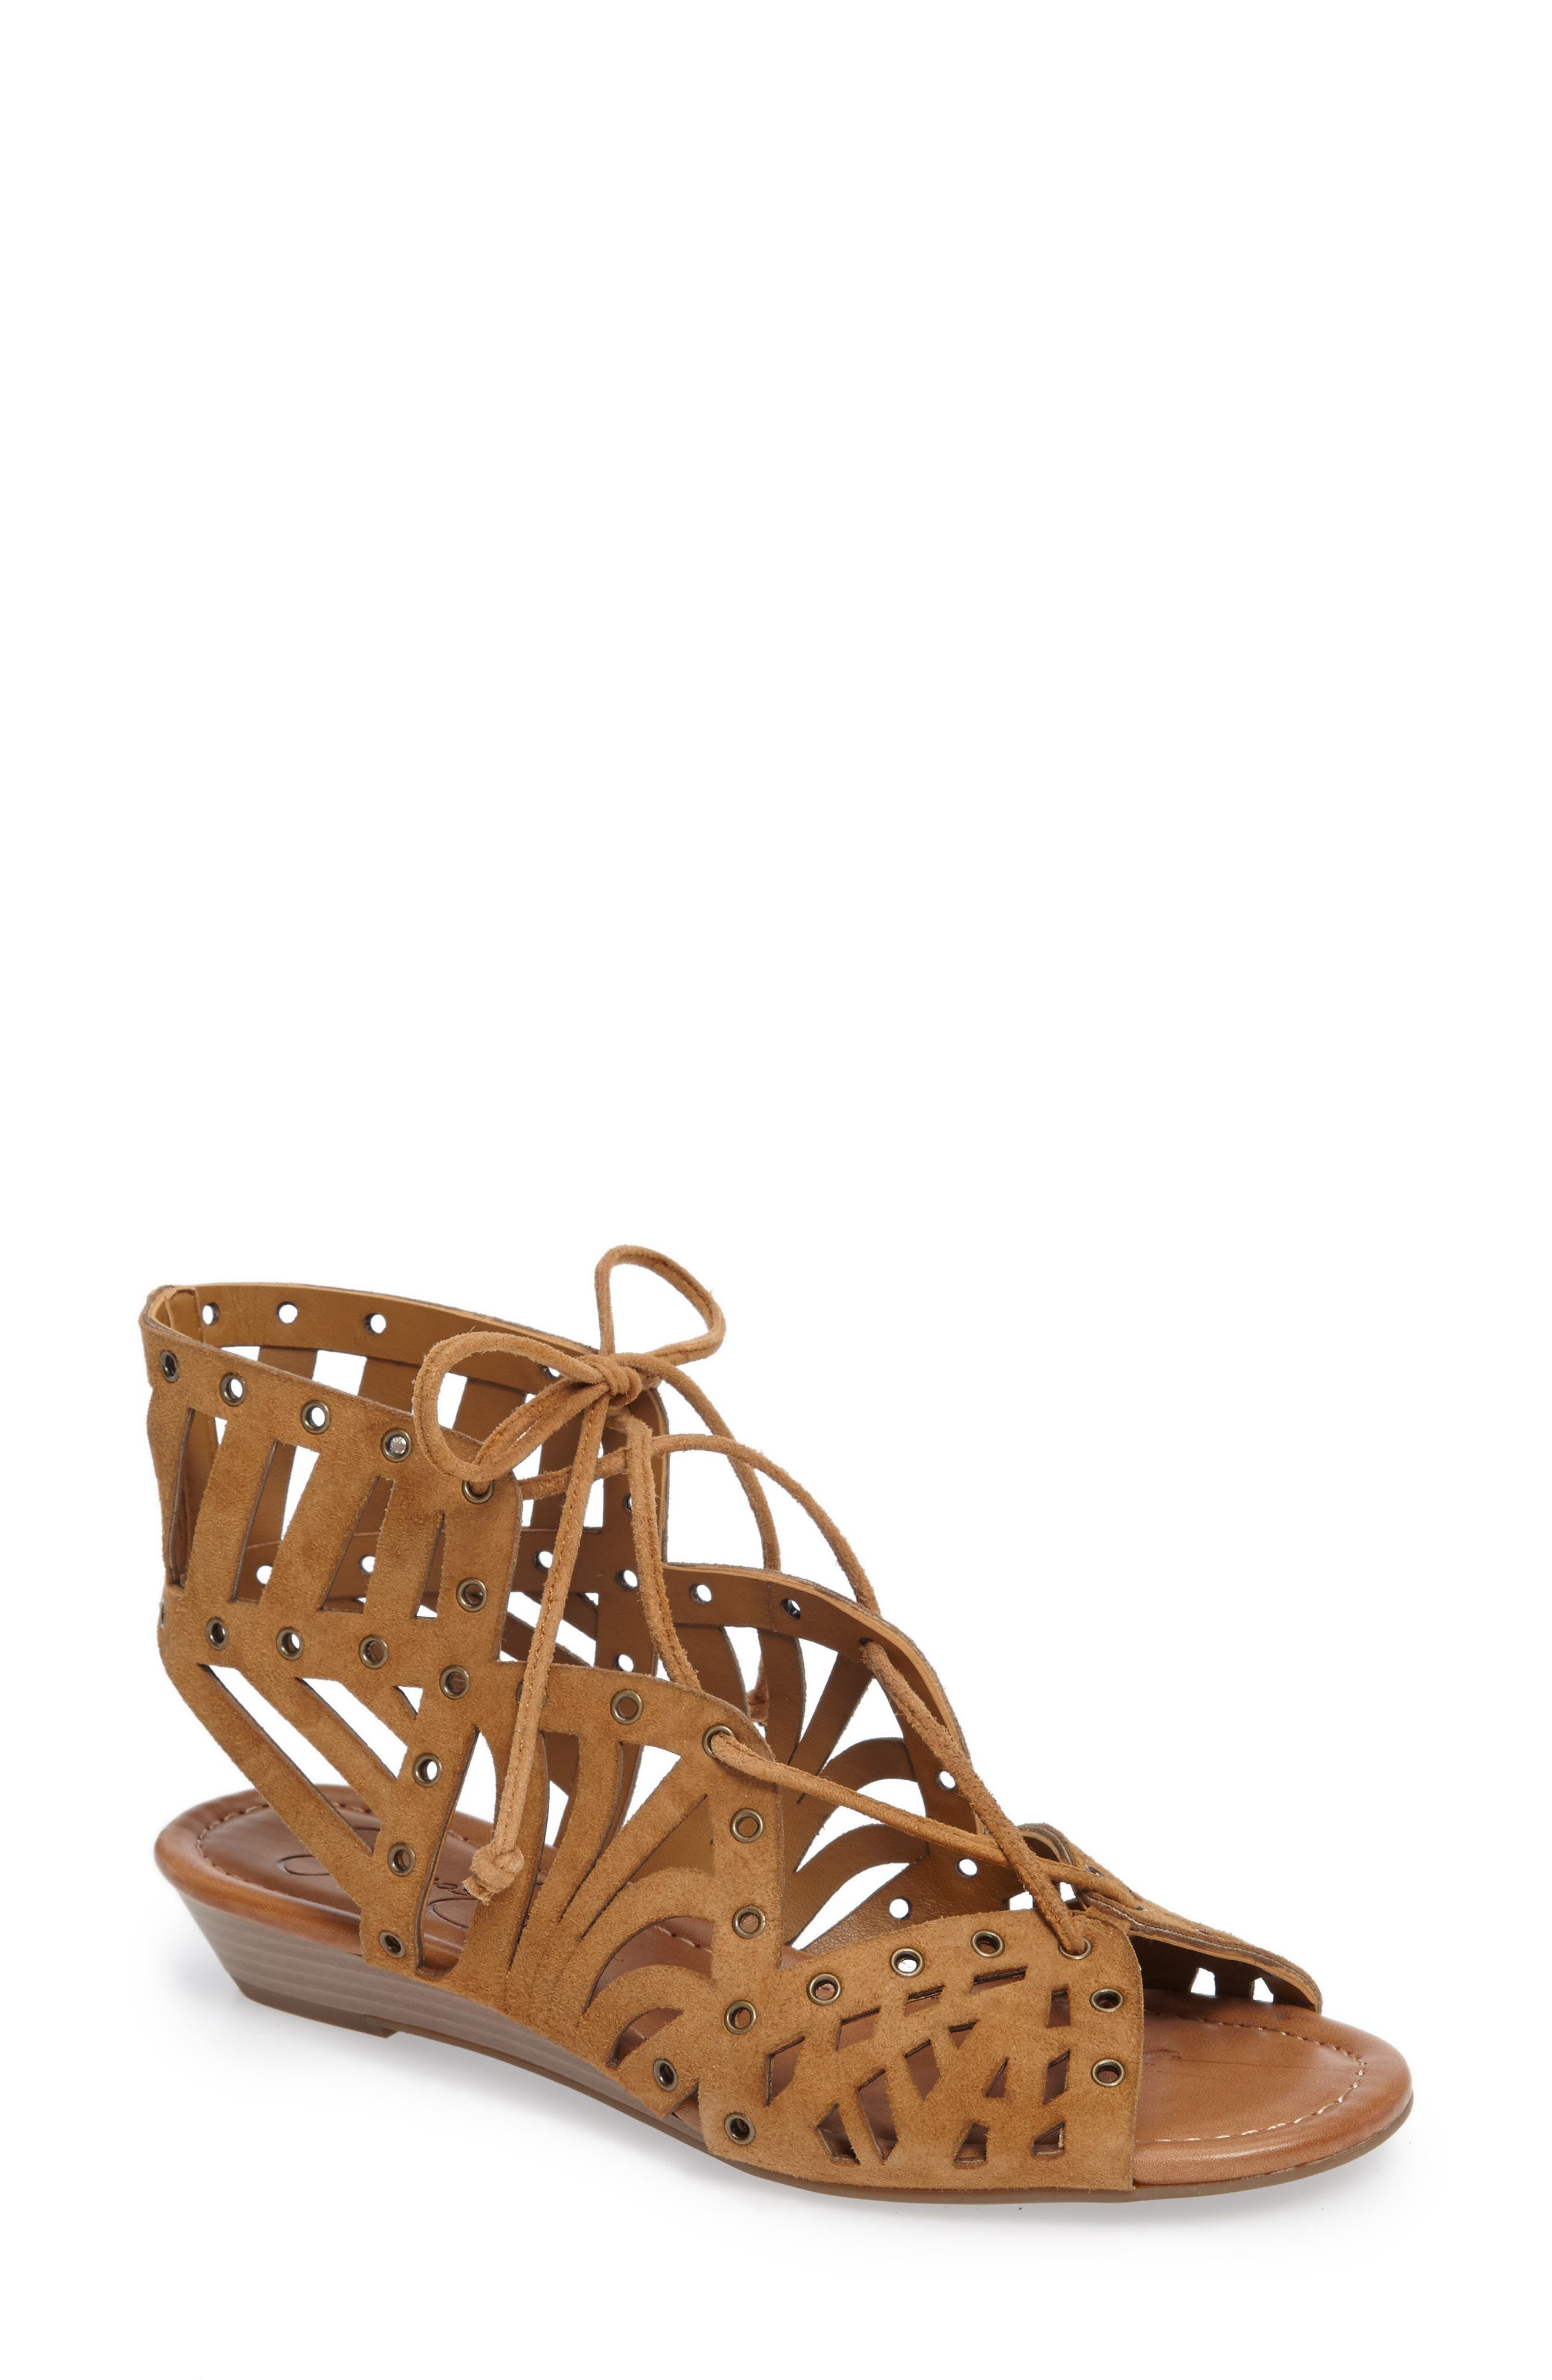 Lalaine Ghillie Lace Sandal,                         Main,                         color, Honey Brown Suede